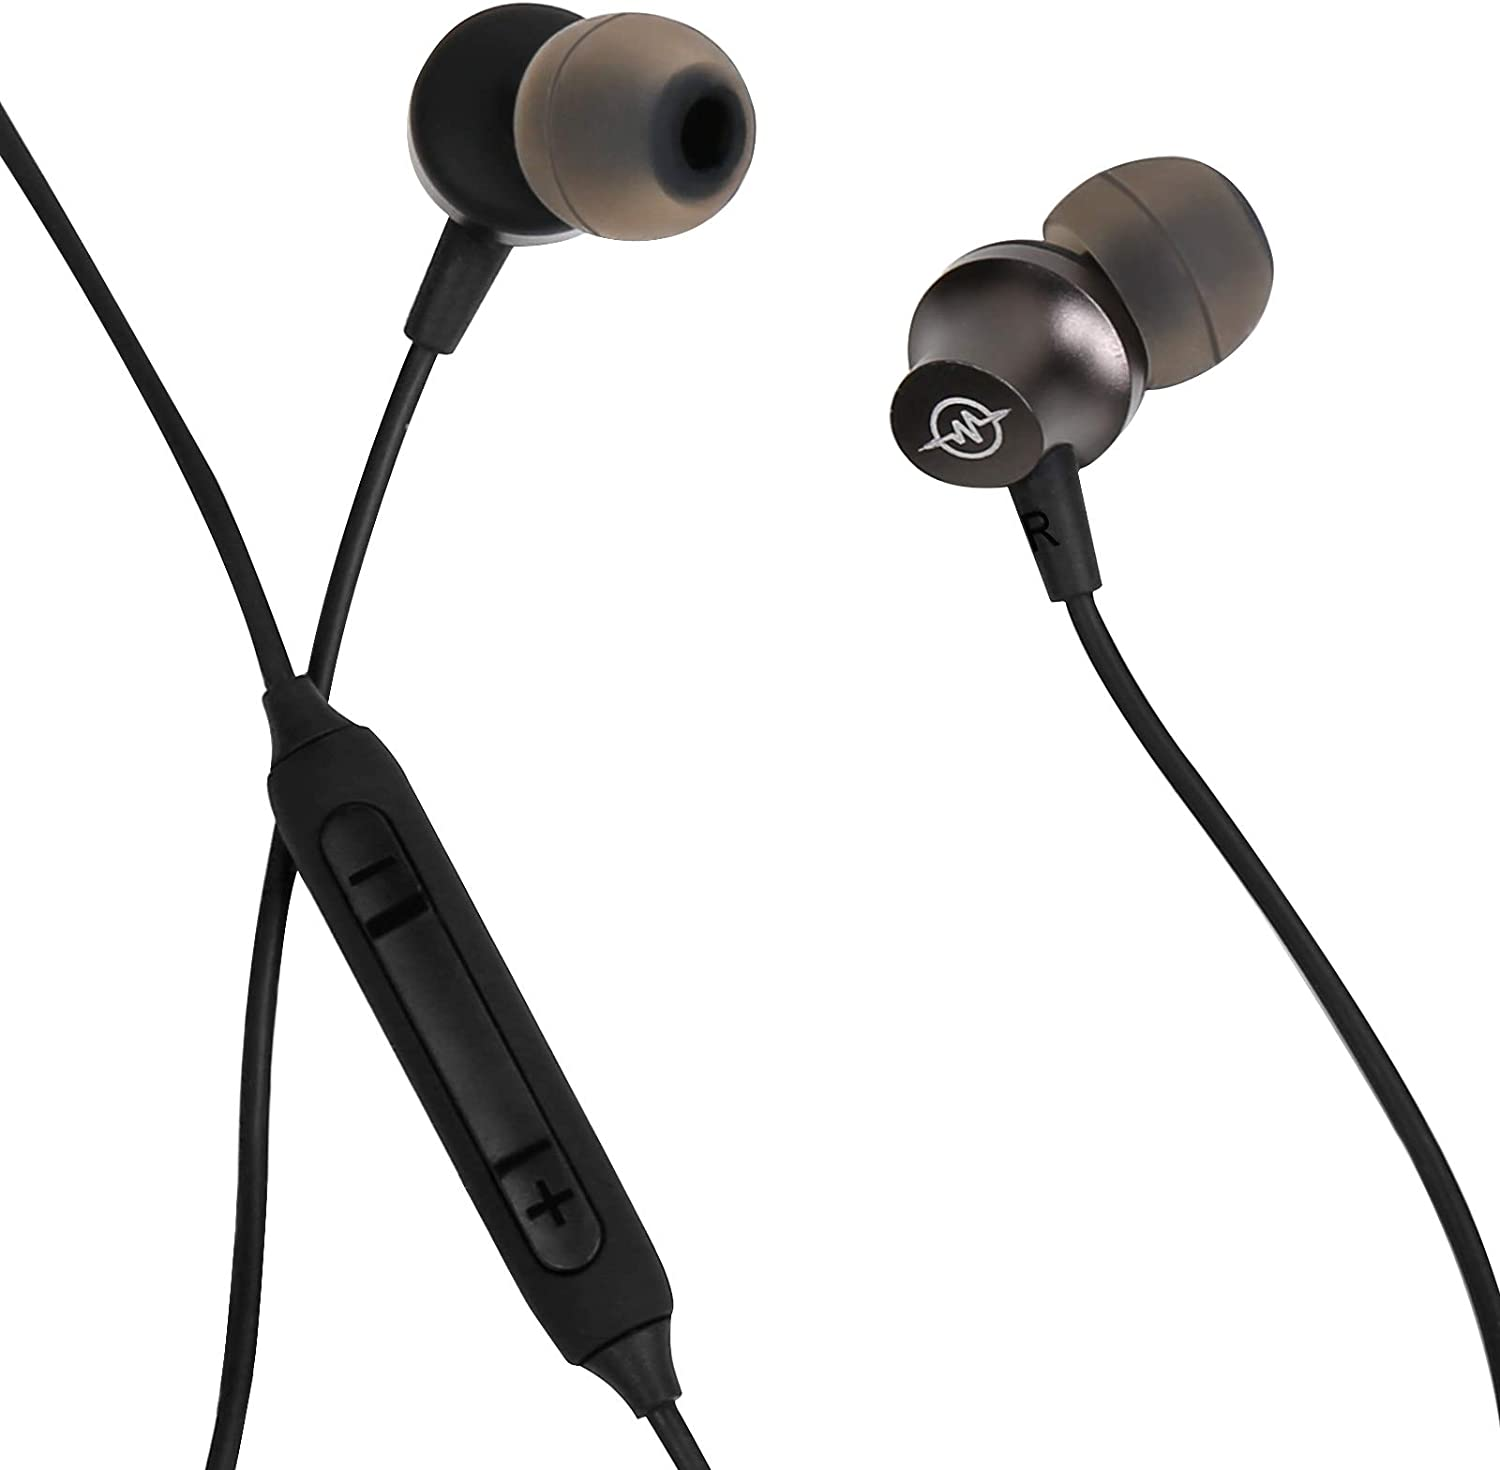 Earbuds Wired Earphones, MELUADI Headphones with Microphone & Noise Isolating Earphones Volume Control, 3.5mm for iPhone, Android Smartphones, iPad, iPod, MP3, Samsung and More (Black)